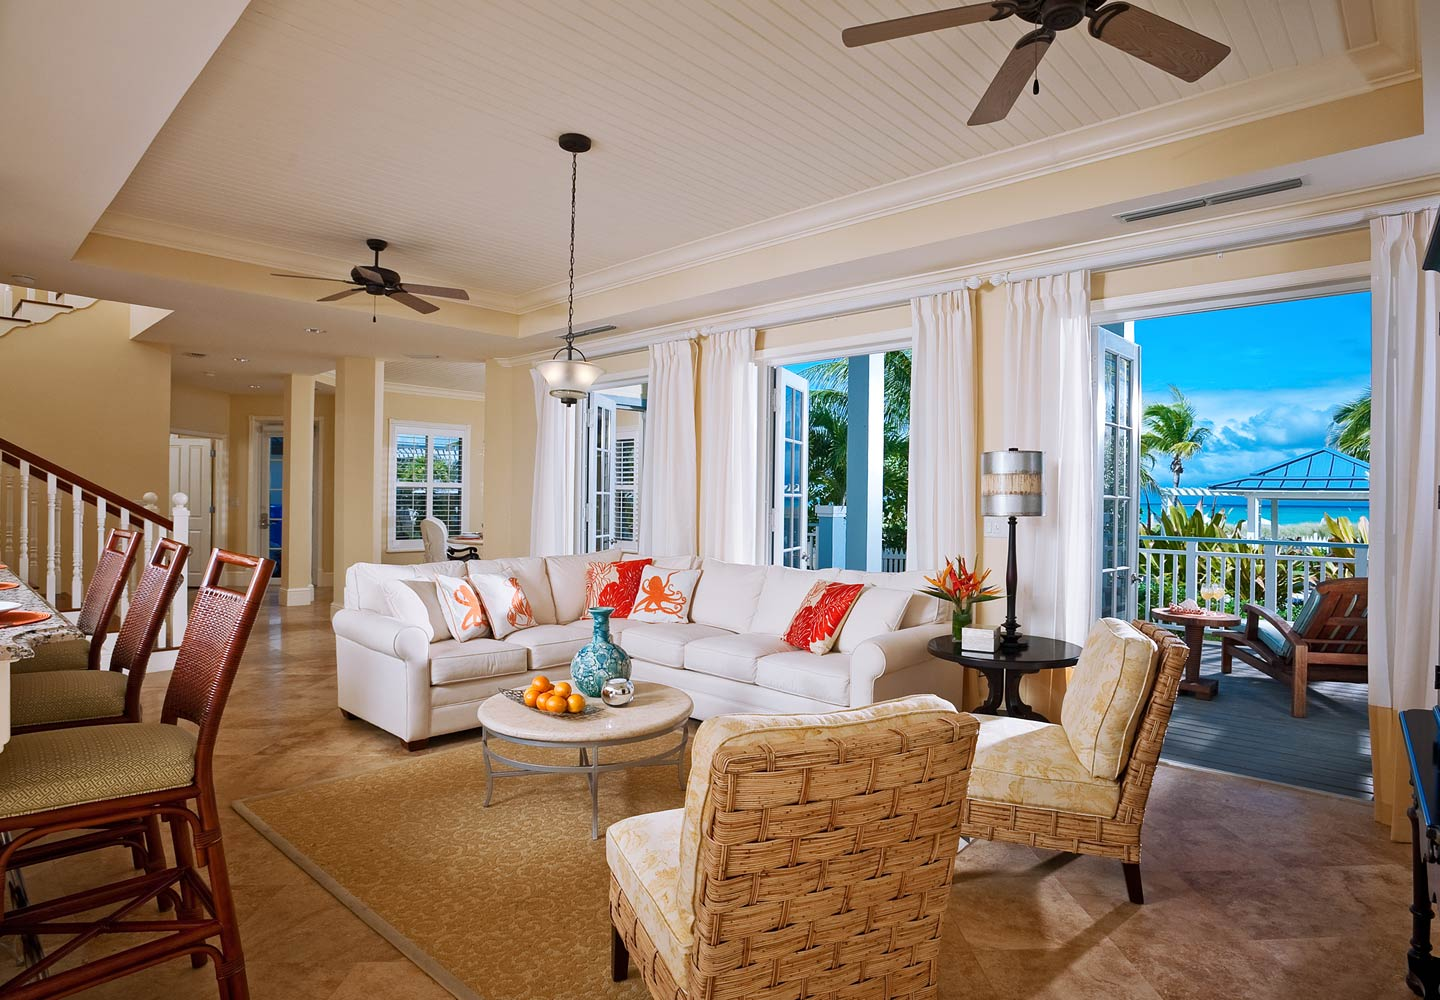 Rooms And Suites In Jamaica And Turks Caicos Beaches